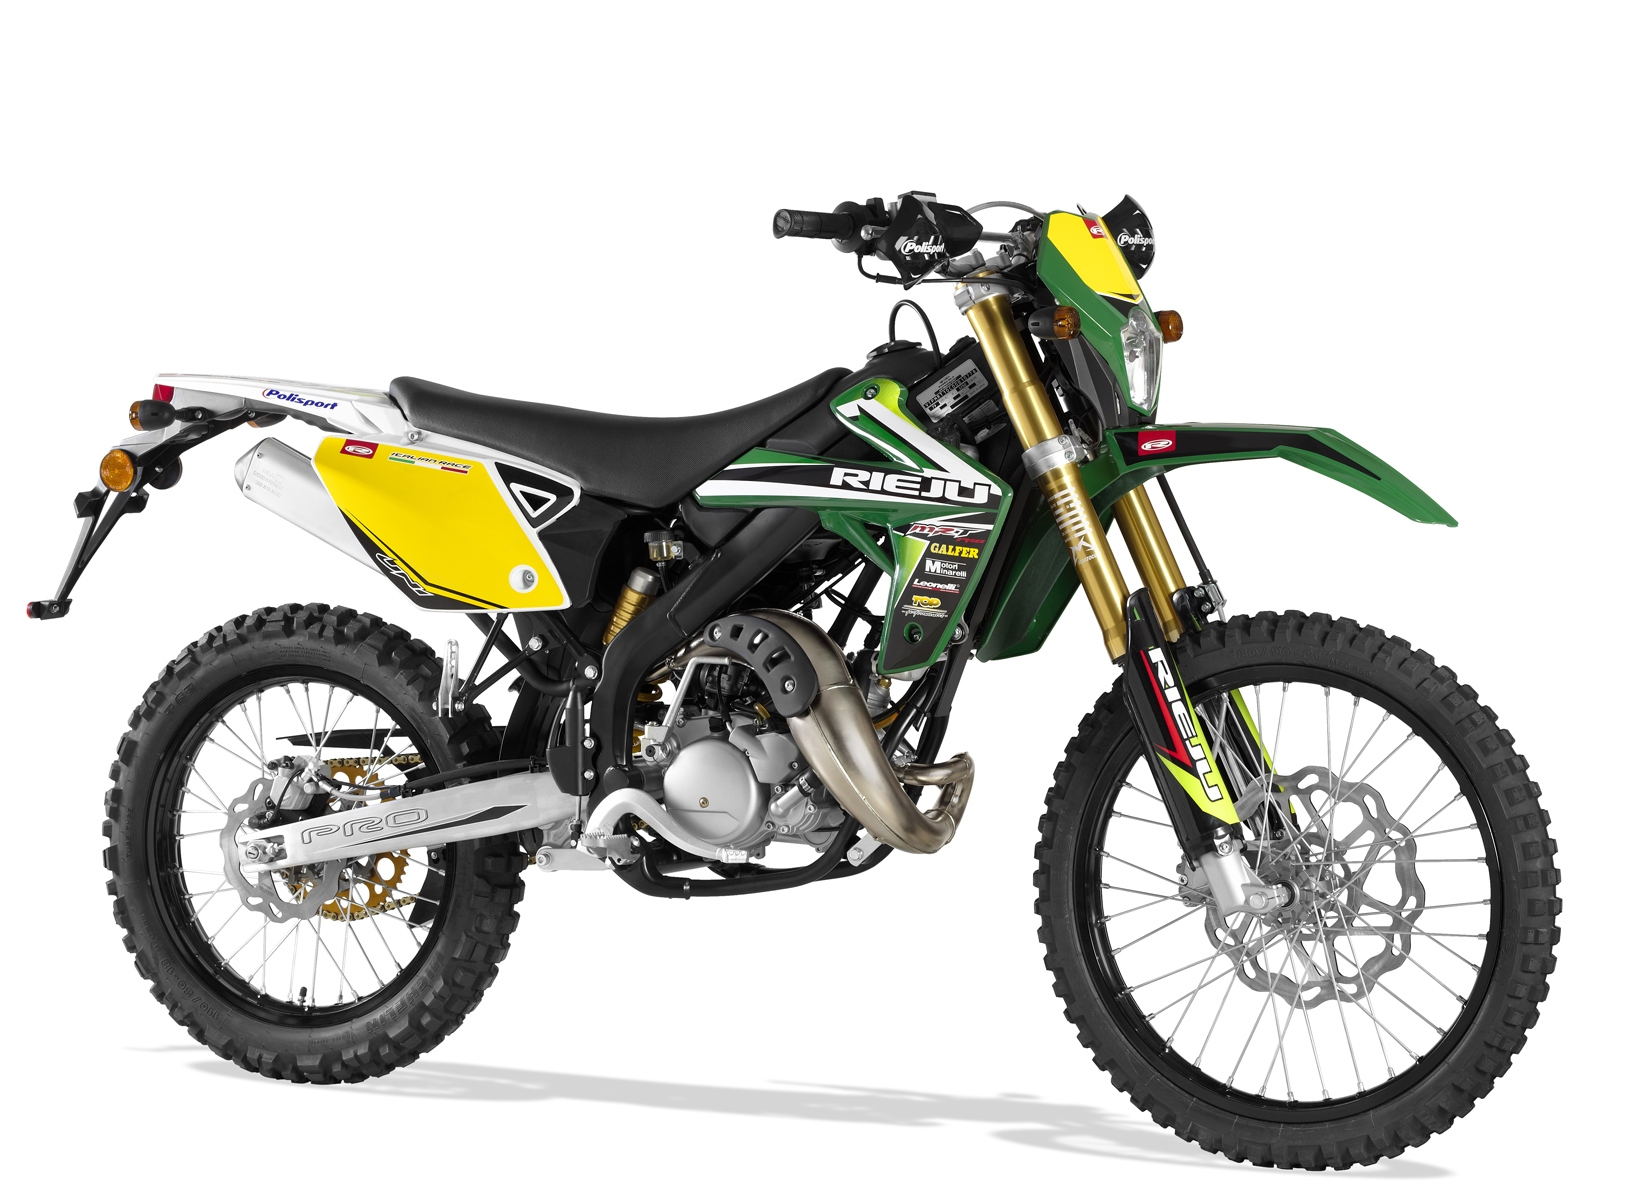 2013 rieju mrt 50 pro the diminutive motocross machine autoevolution. Black Bedroom Furniture Sets. Home Design Ideas